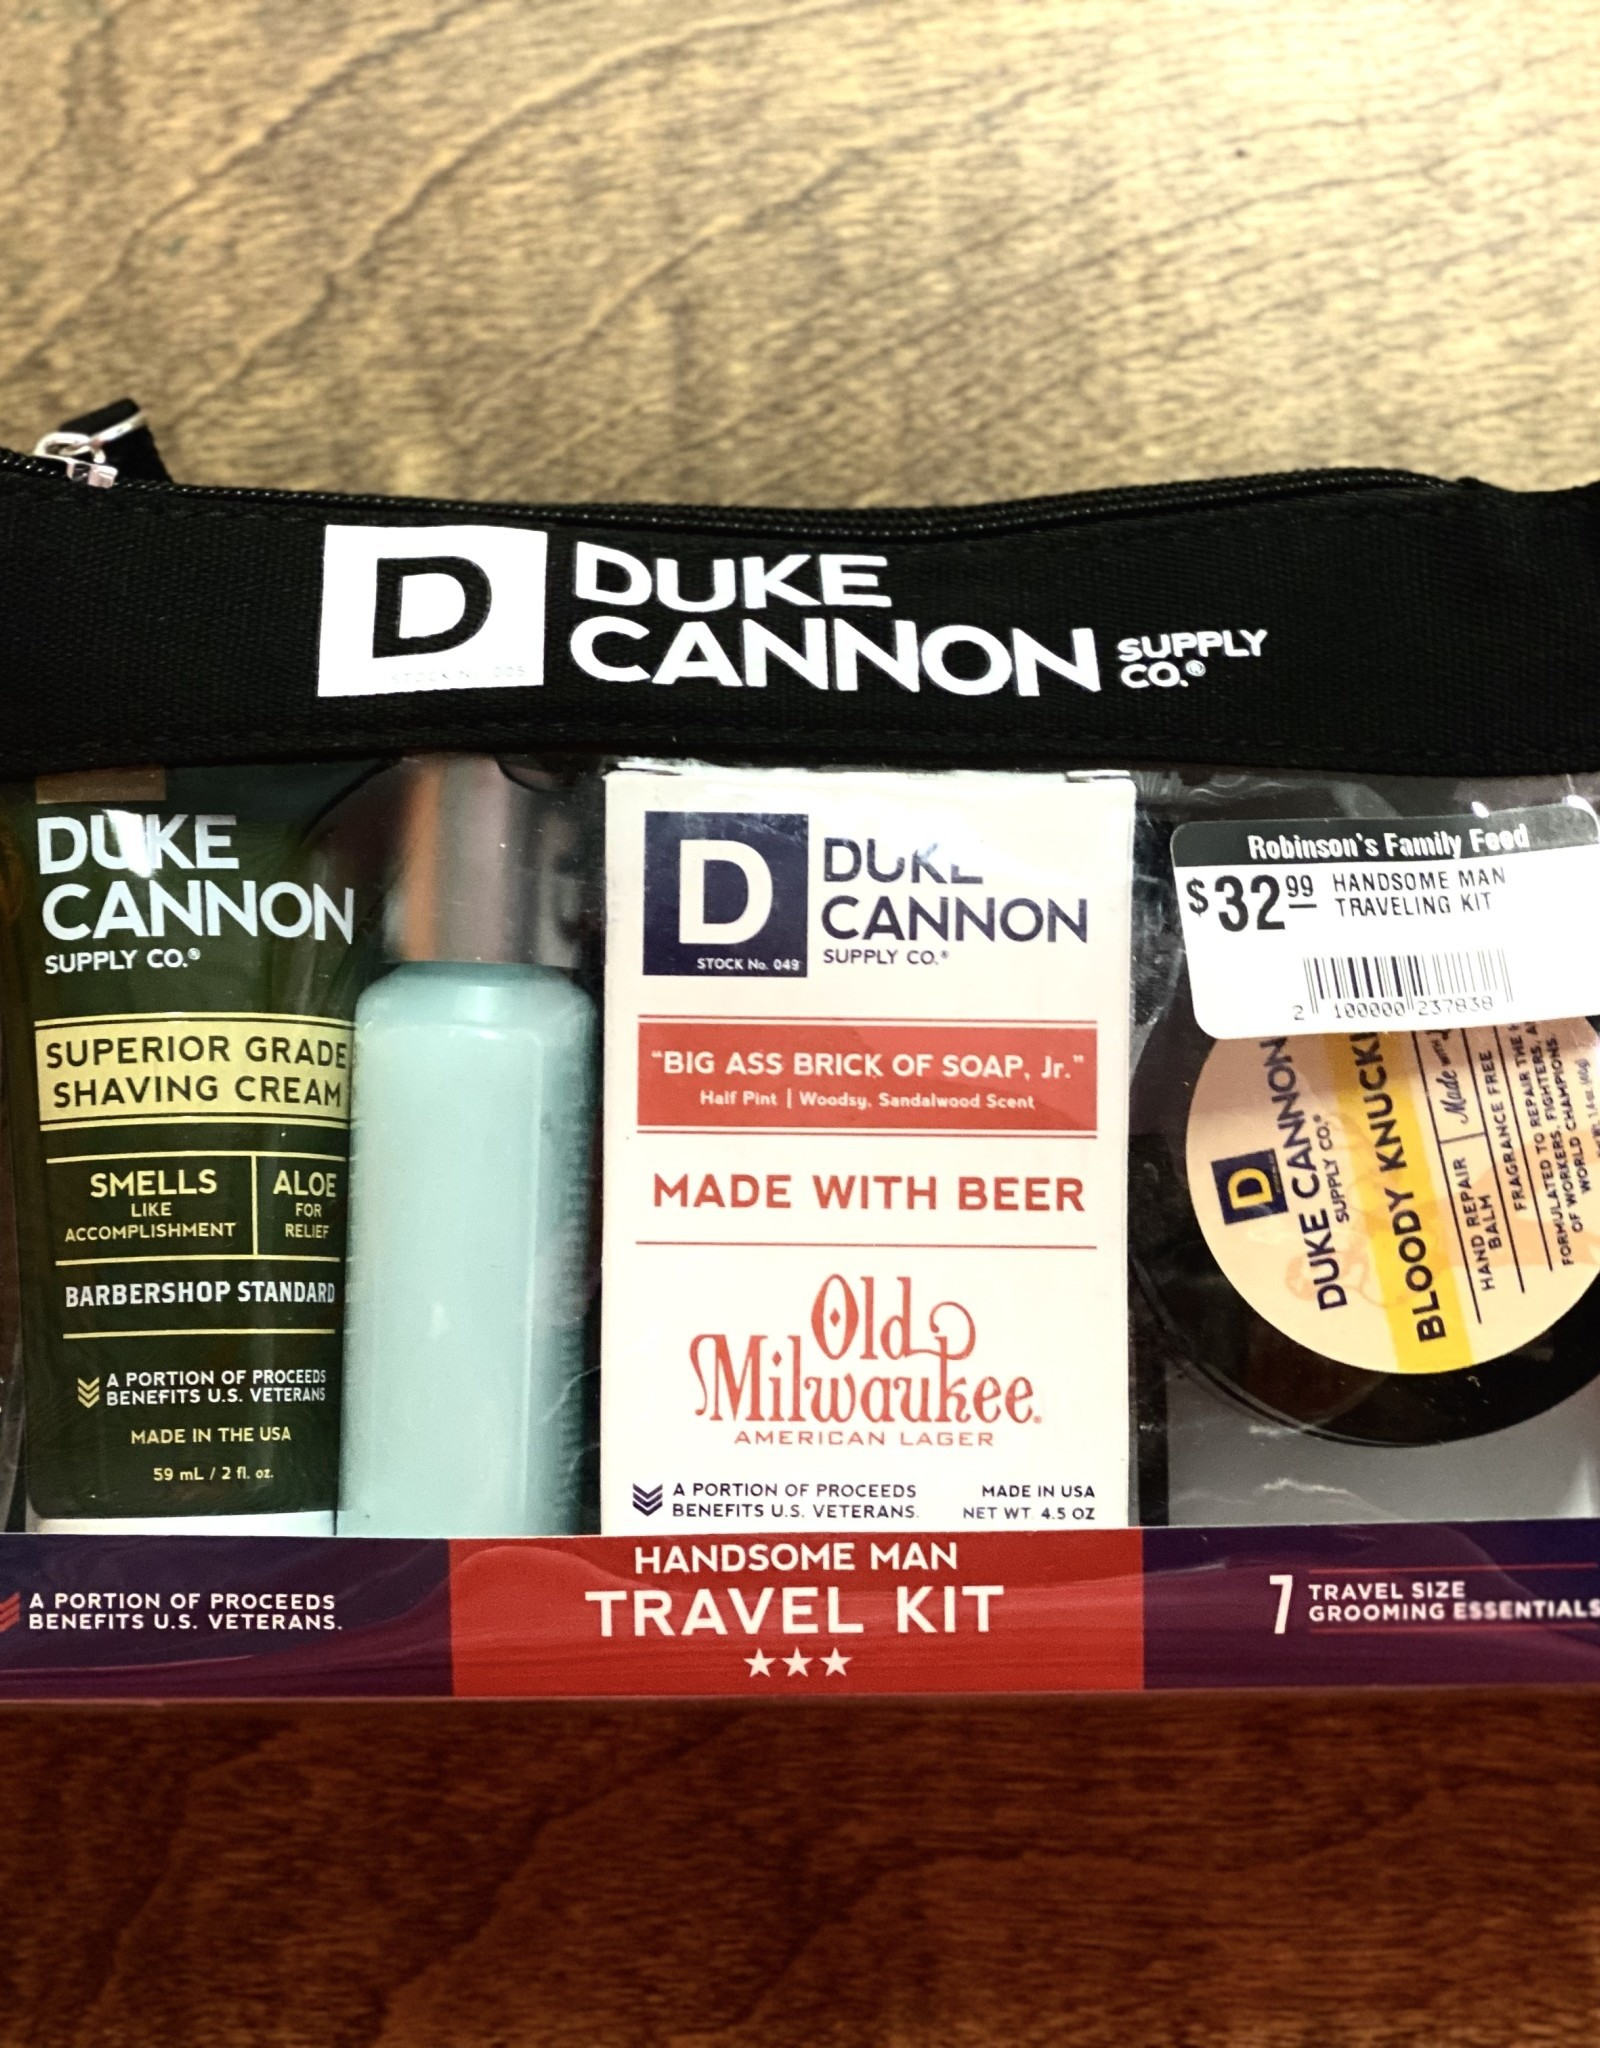 HANDSOME MAN TRAVELING KIT DUKE CANON